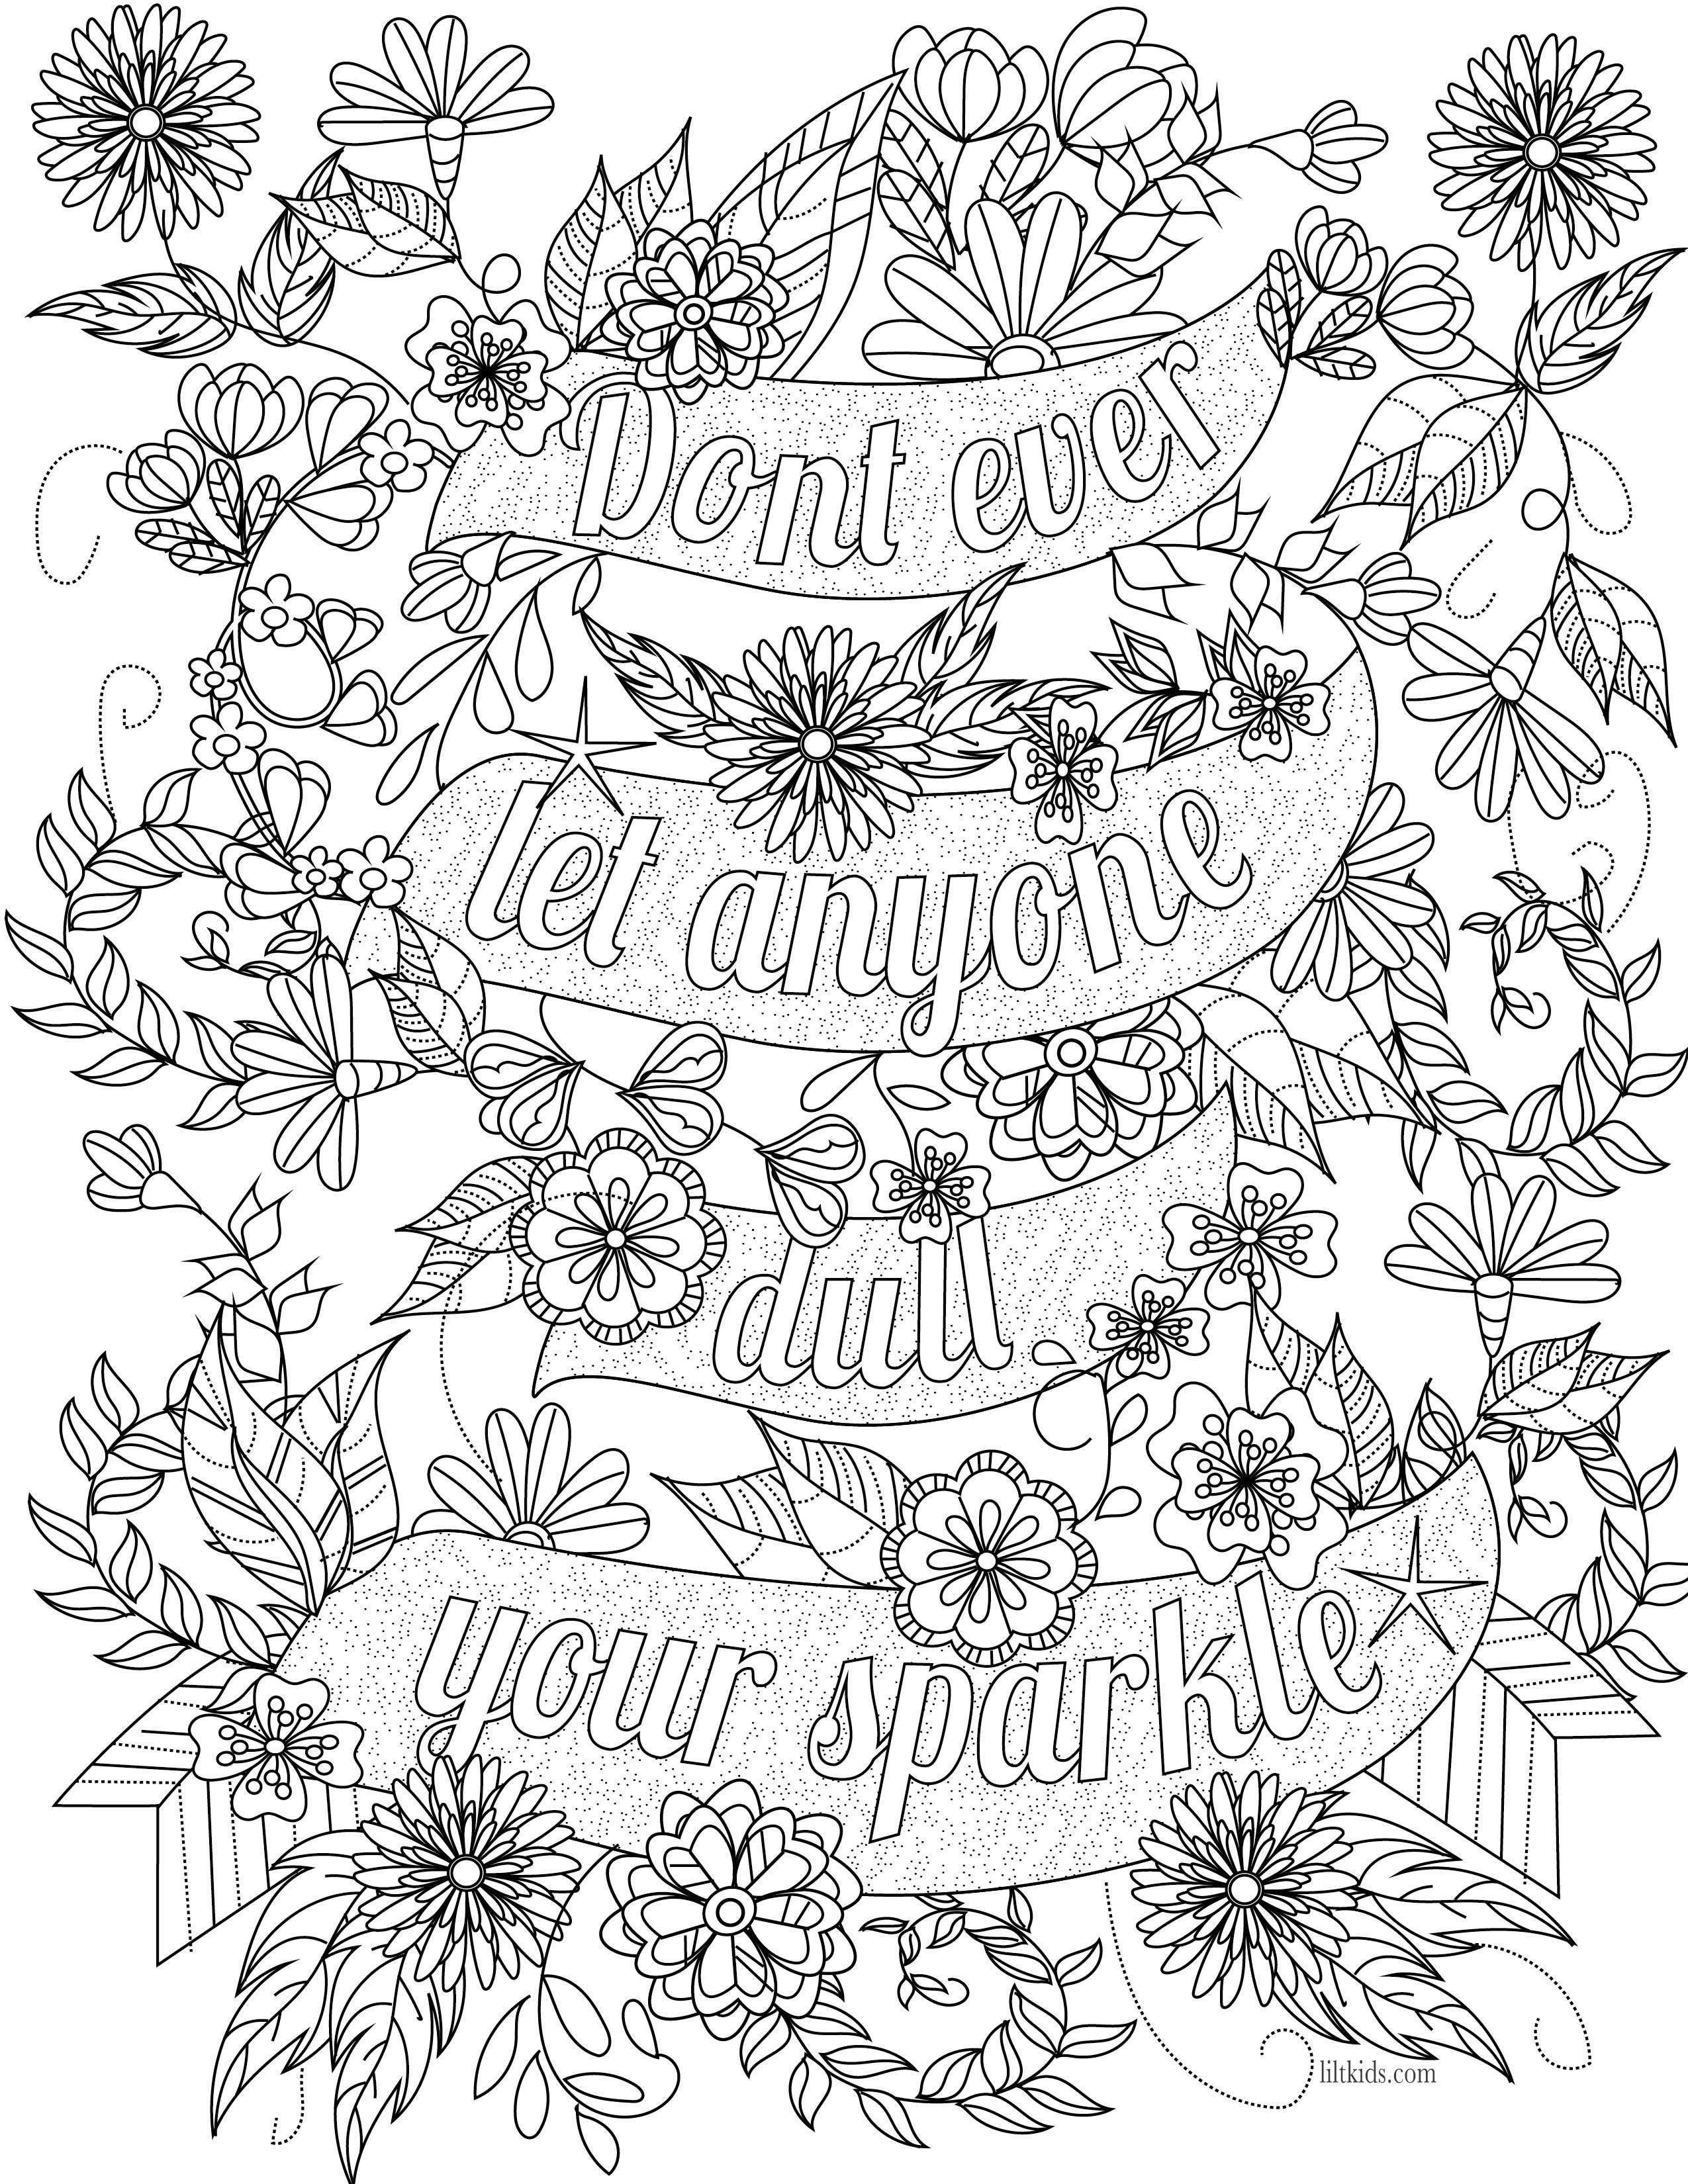 Inspirational Coloring Pages Pdf : inspirational, coloring, pages, Adult, Coloring, Pages